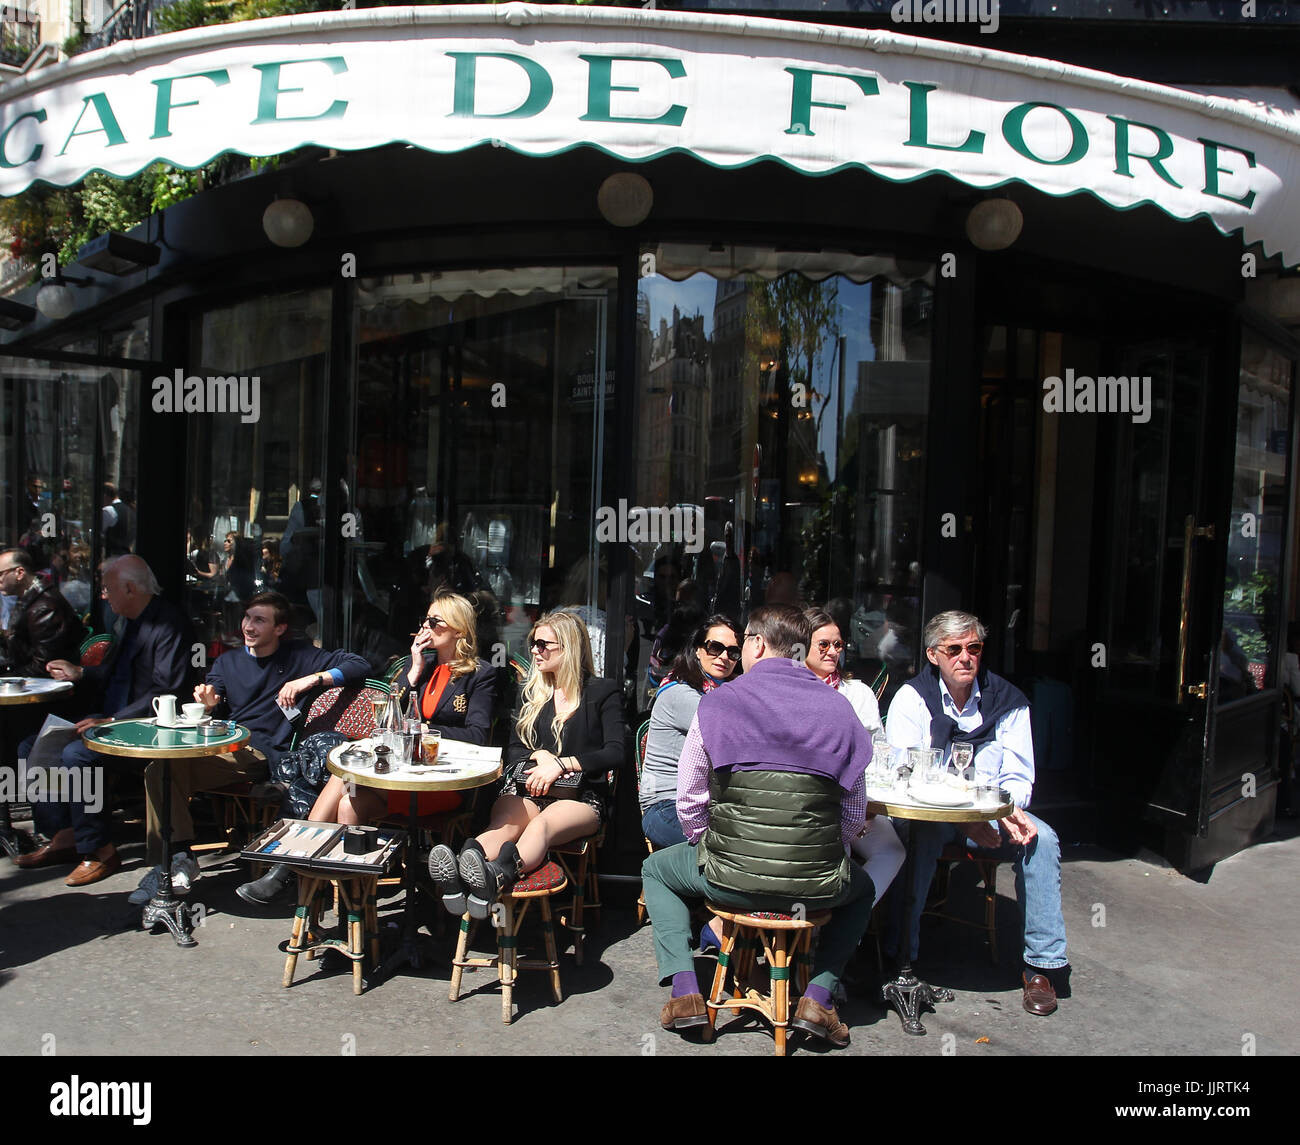 The Cafe de Flore  is one of the oldest coffeehouses in Paris. Located on Boulevard Saint-Germain it's a famous - Stock Image